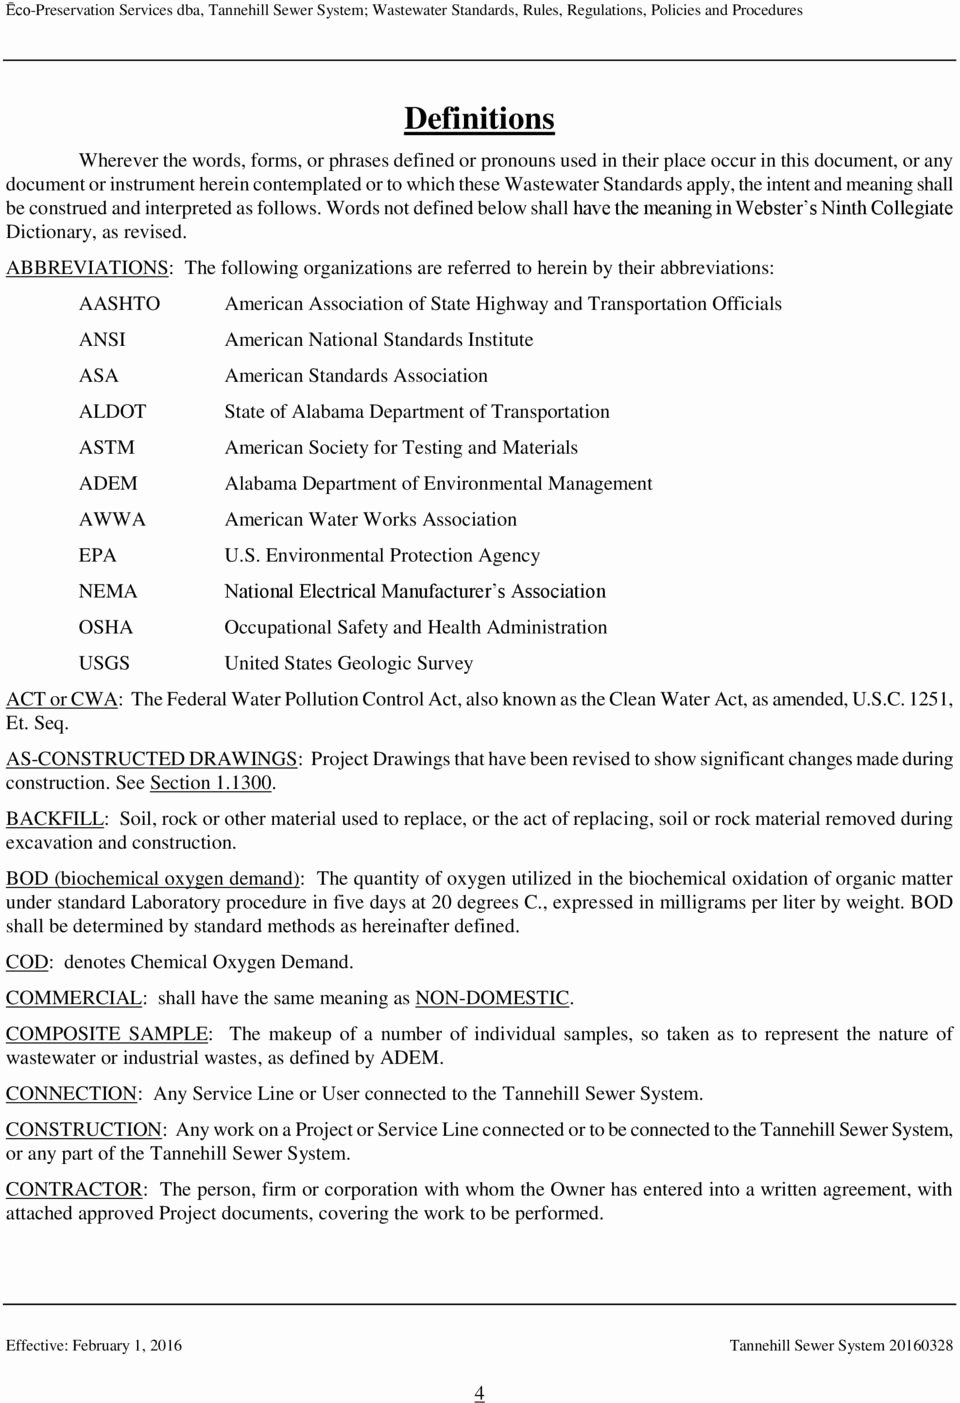 Utility Easement Agreement Template Beautiful ēco Preservation Services Pdf